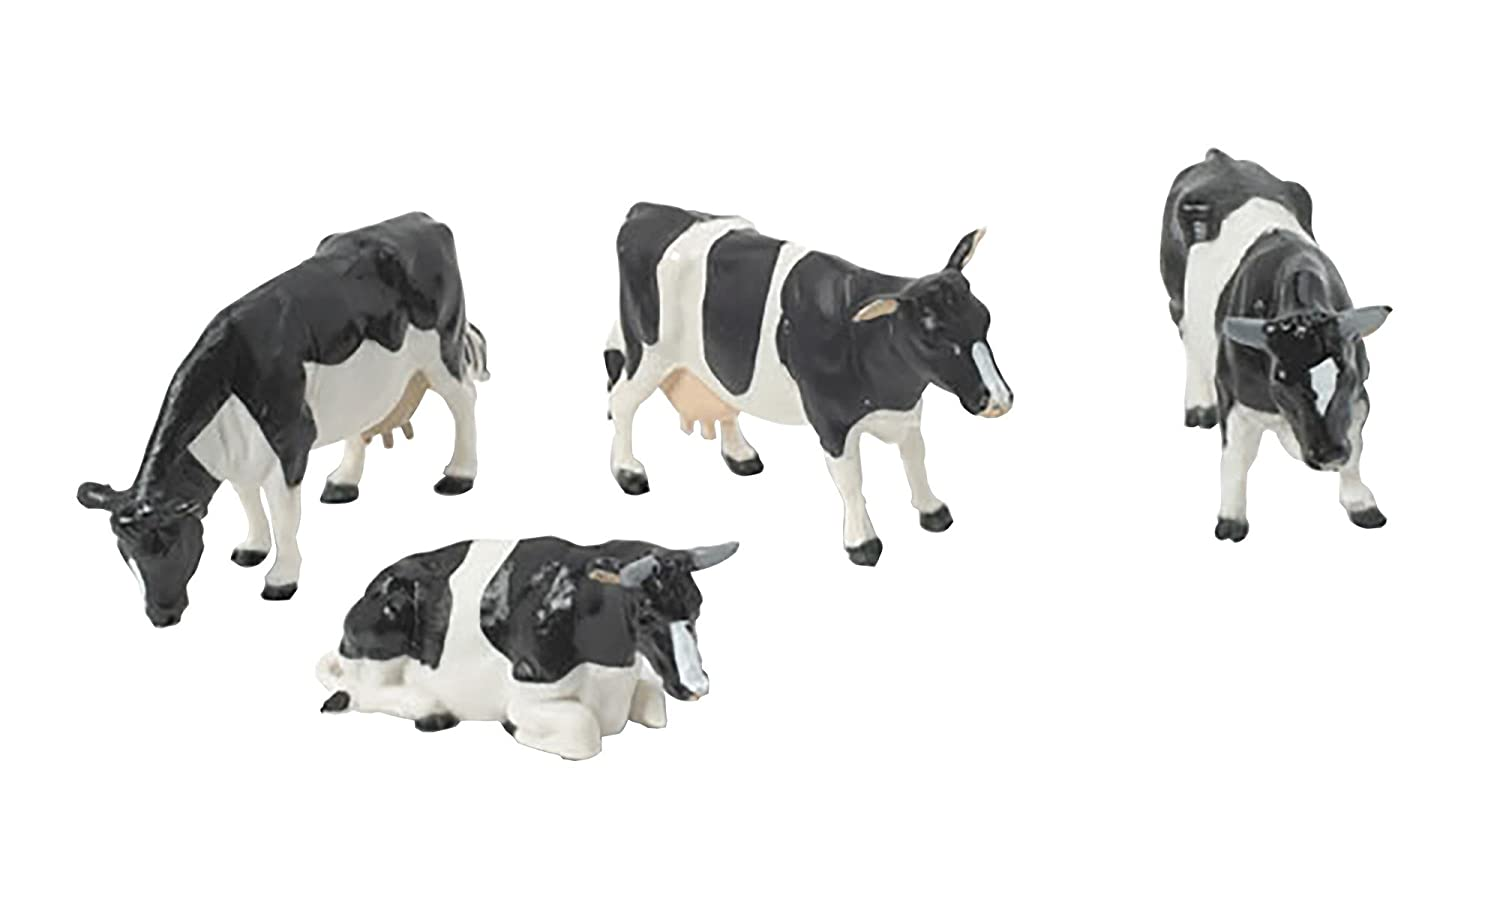 Action Figures Genuine Brand New Schleich Collectable Farm Animal As Shown In Image Au Seller Refreshment